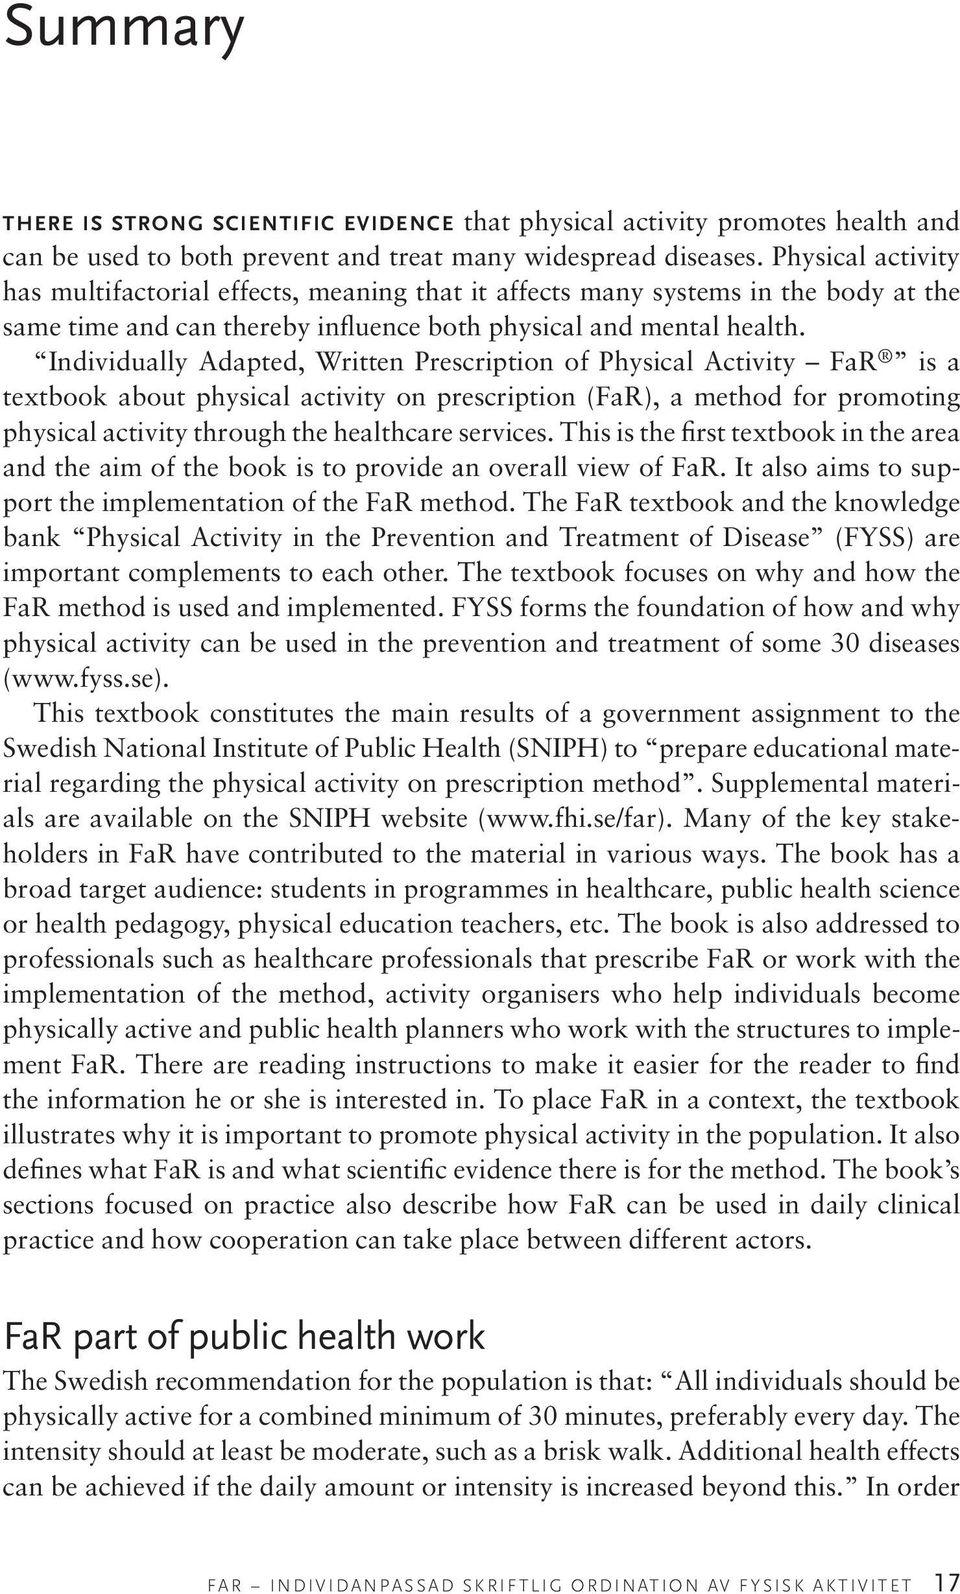 Individually Adapted, Written Prescription of Physical Activity FaR is a textbook about physical activity on prescription (FaR), a method for promoting physical activity through the healthcare